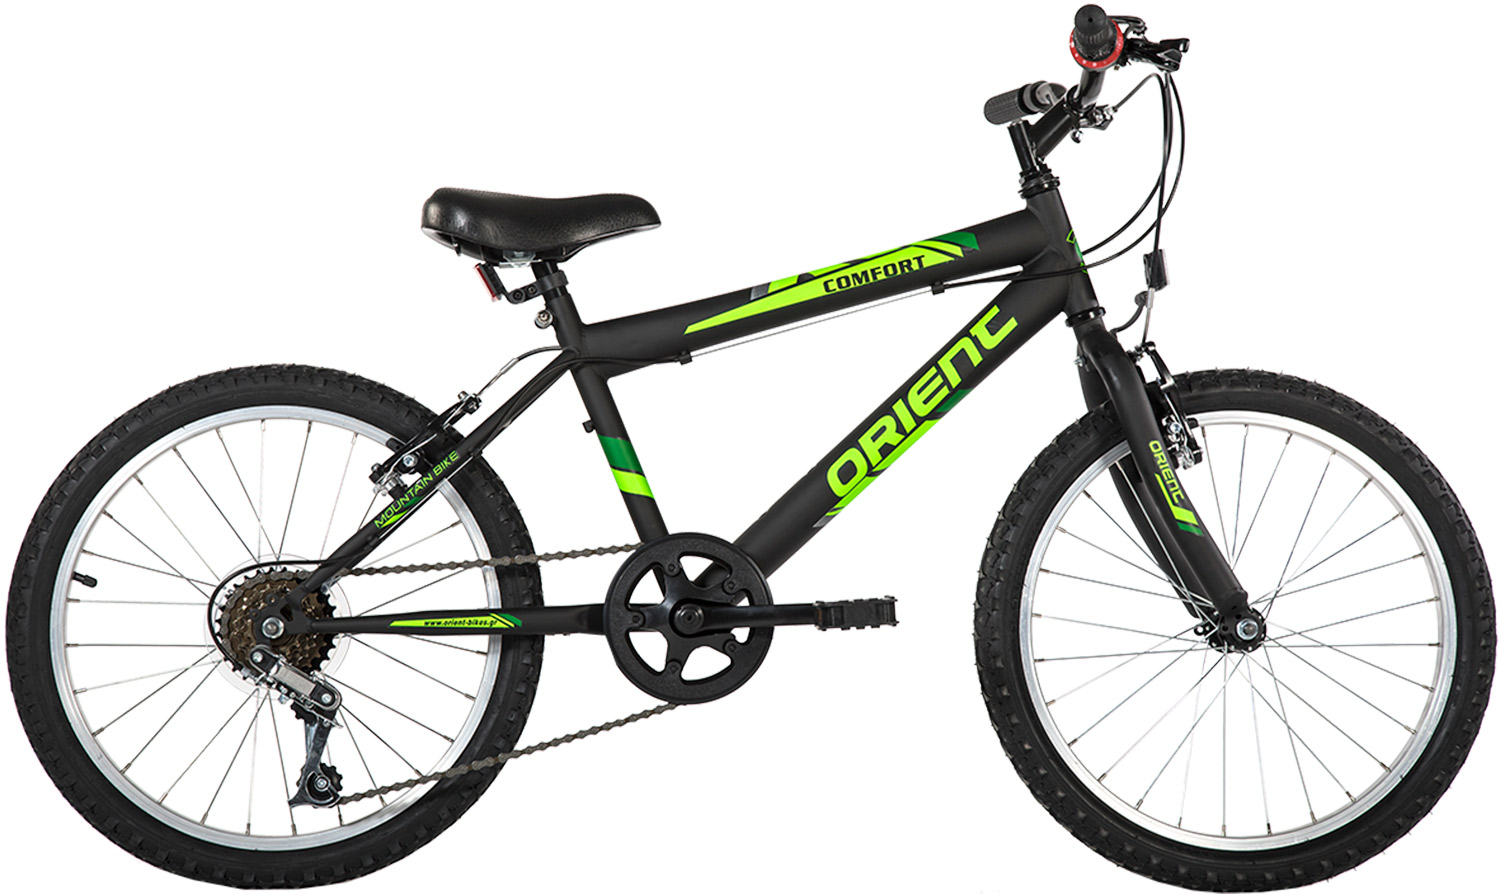 COMFORT 20″ man 6sp. bike image